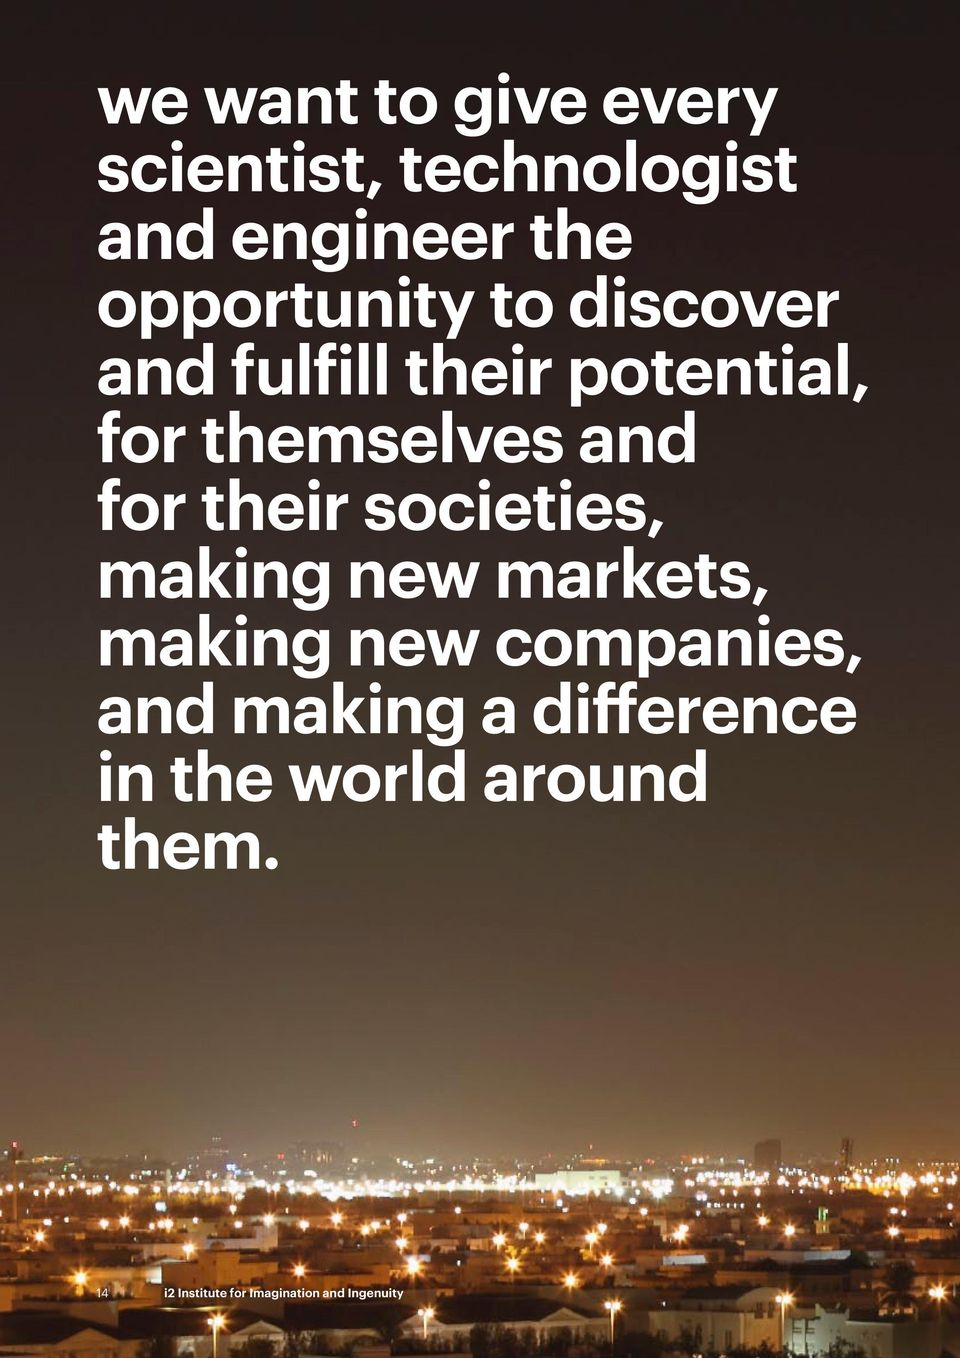 for their societies, making new markets, making new companies, and making